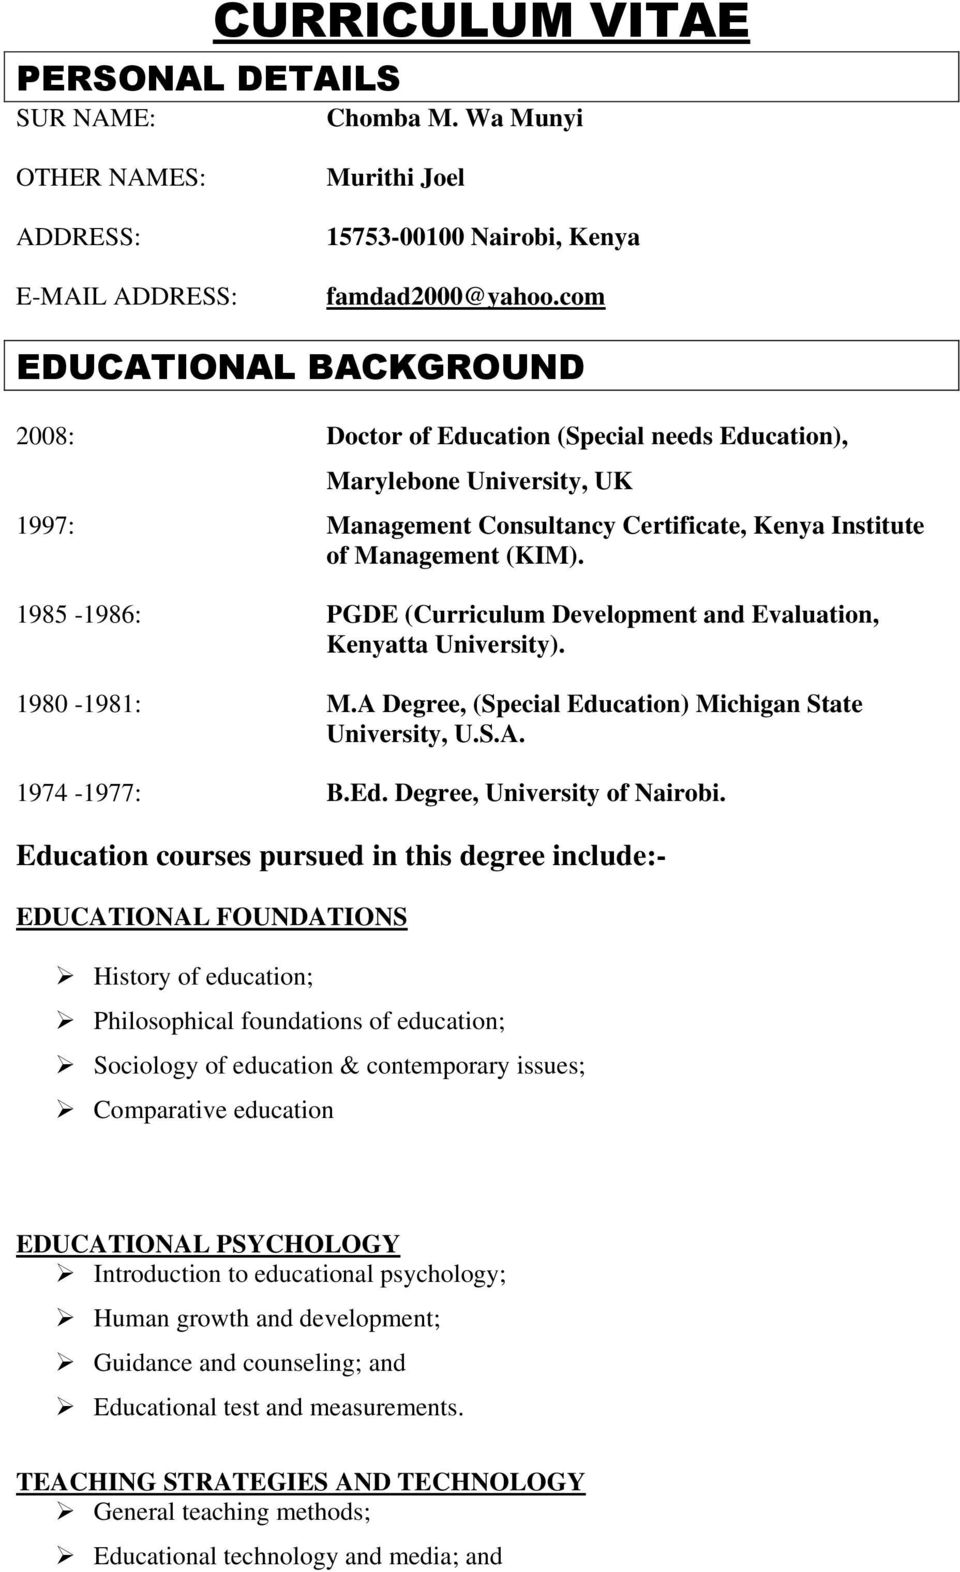 1985-1986: PGDE (Curriculum Development and Evaluation, Kenyatta University). 1980-1981: M.A Degree, (Special Education) Michigan State University, U.S.A. 1974-1977: B.Ed. Degree, University of Nairobi.